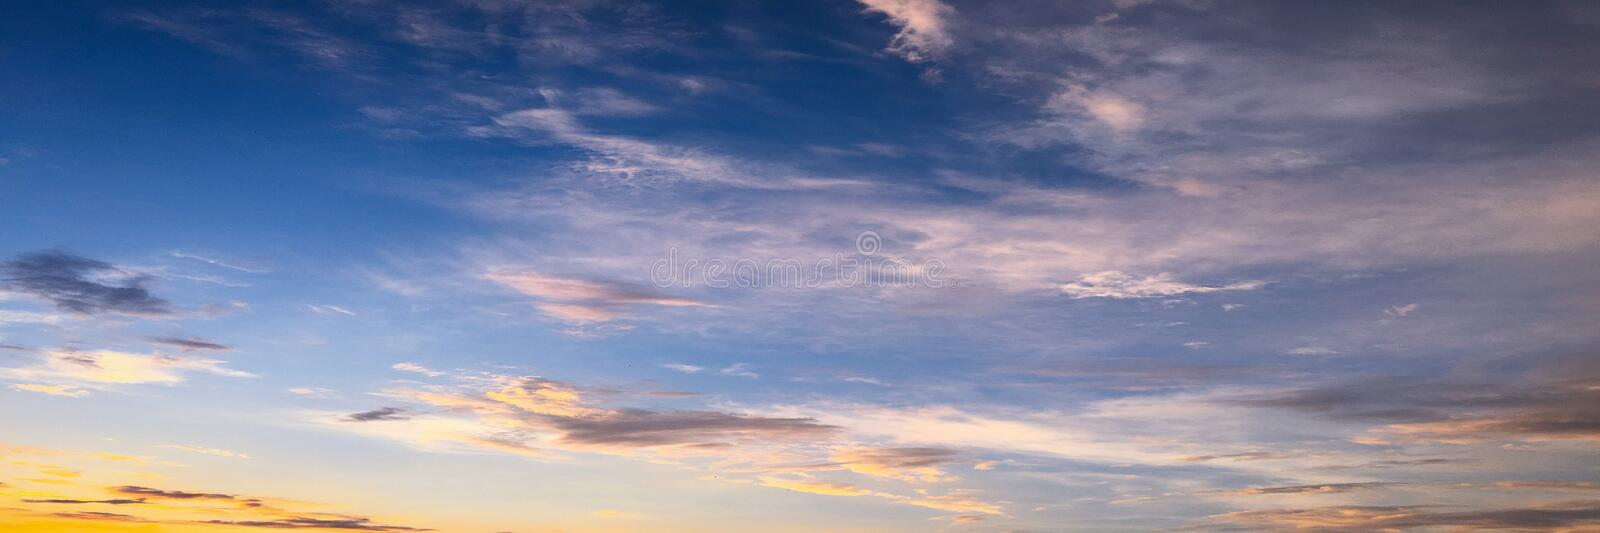 Beautiful clouds against a blue sky background. Cloud sky. Blue sky with clouds weather, nature cloud. White clouds, blue sky and royalty free stock photography